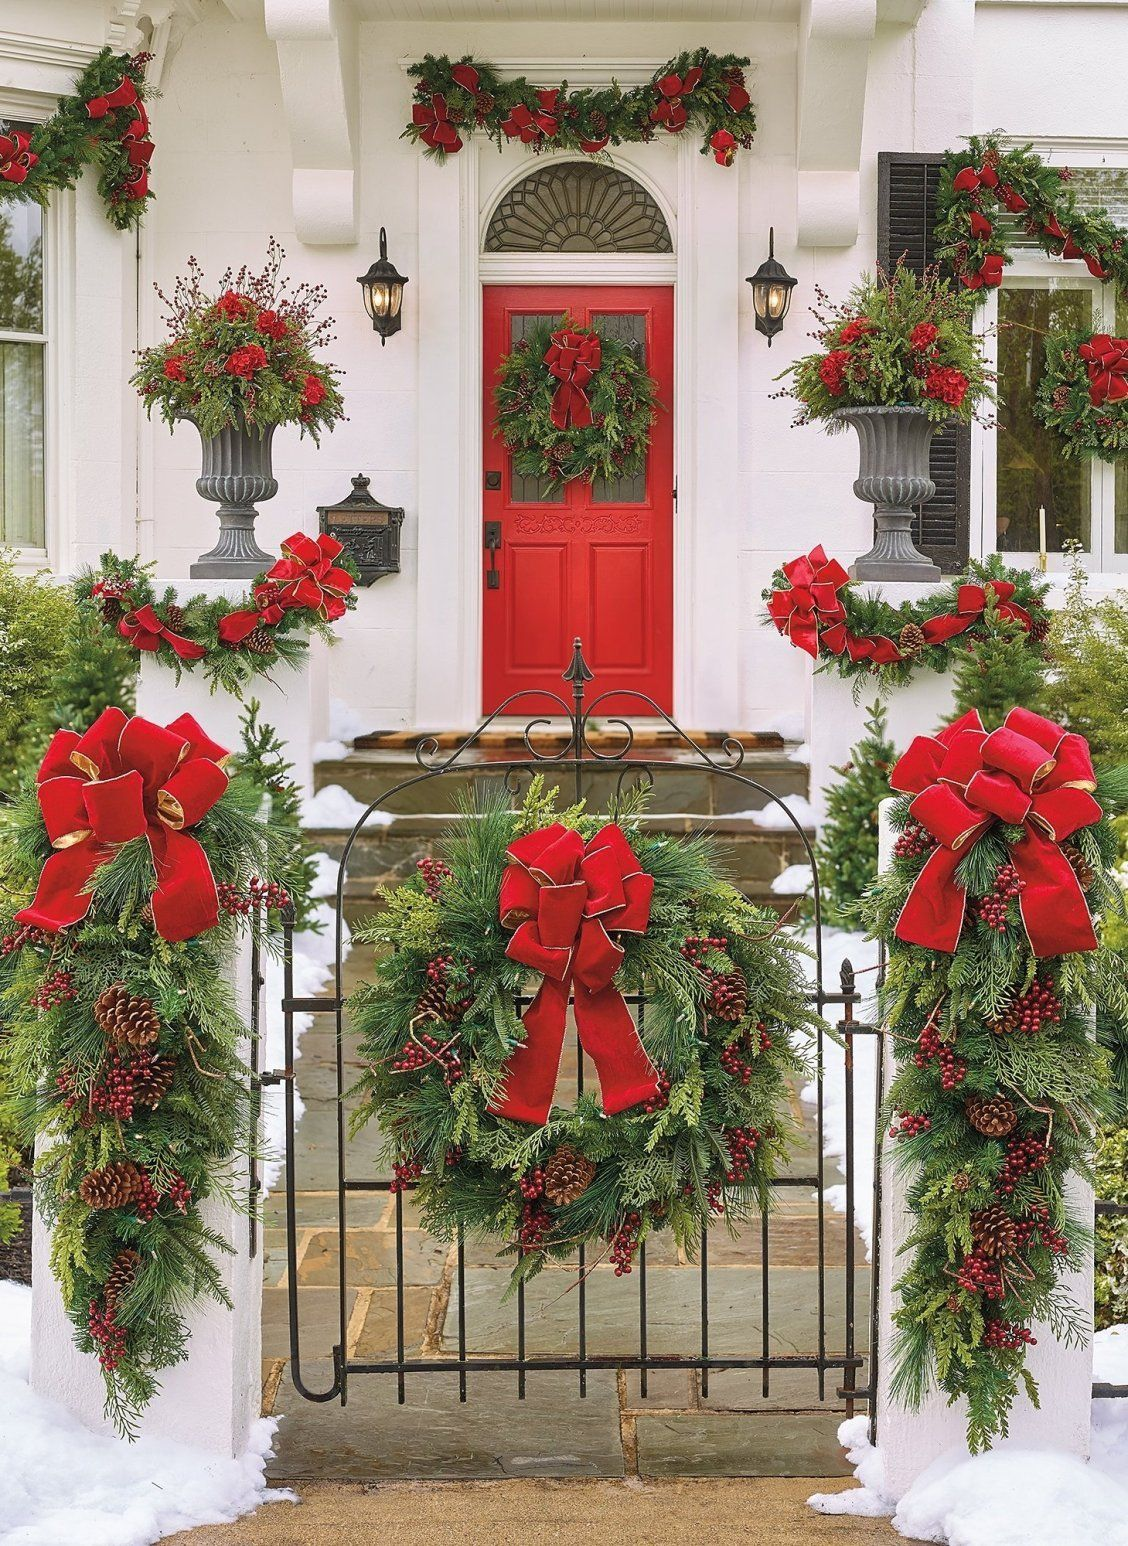 Naples Christmas Cheer 2020 Christmas Cheer Wreath with Red Bow | Frontgate in 2020 | Front